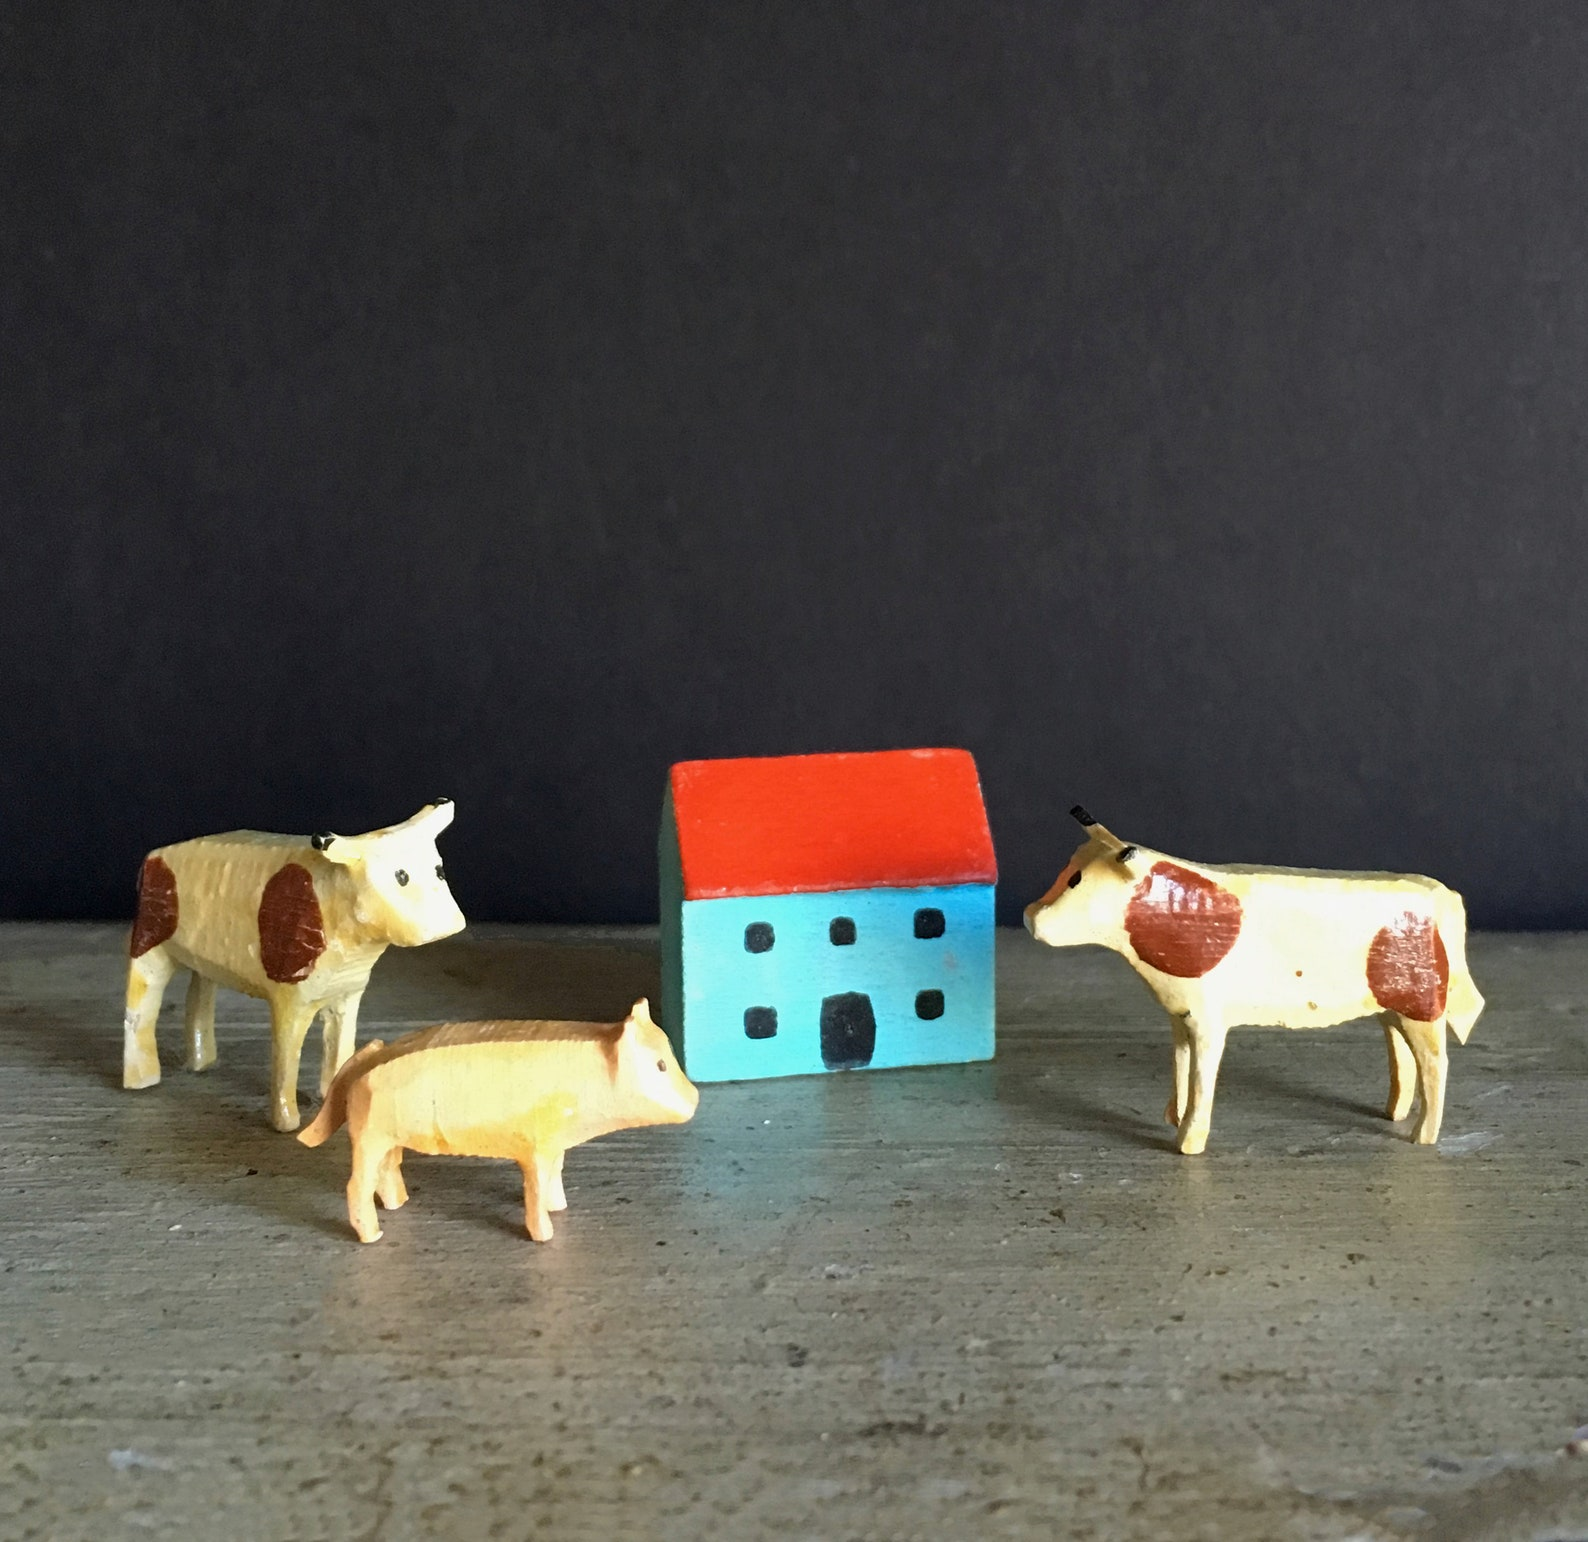 Miniature vintage Erzgebirge figurines, farm animals, wooden cows and pig, handmade German toys, Putz, folk art, holiday or dollhouse decor